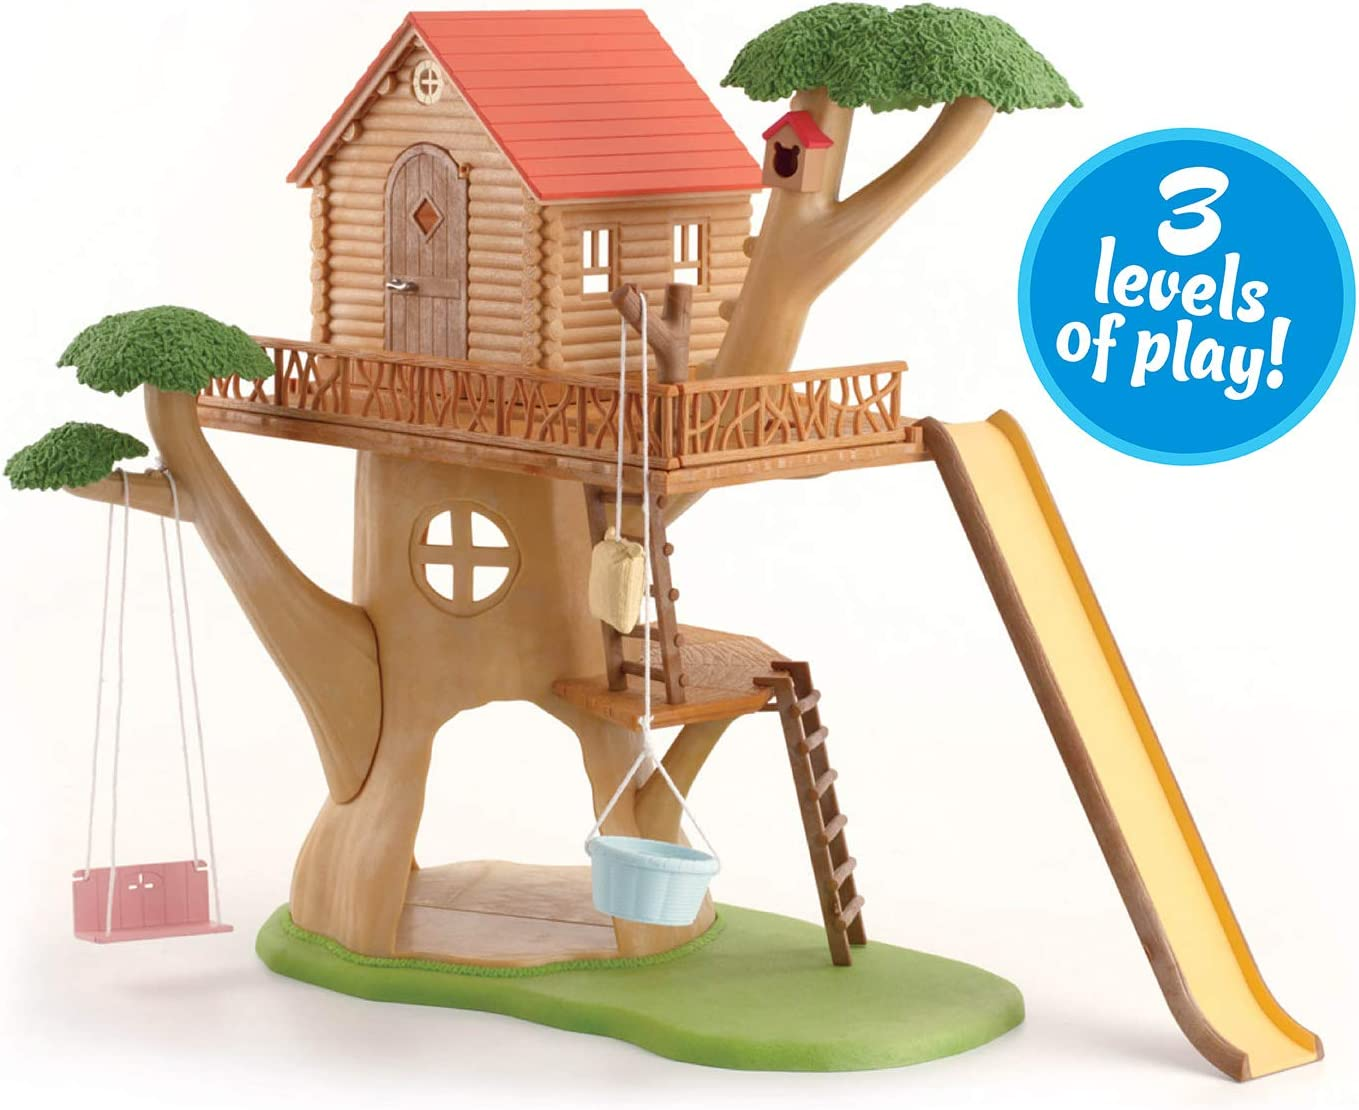 Top 15 Best Calico Critters (2020 Reviews & Buying Guide) 2